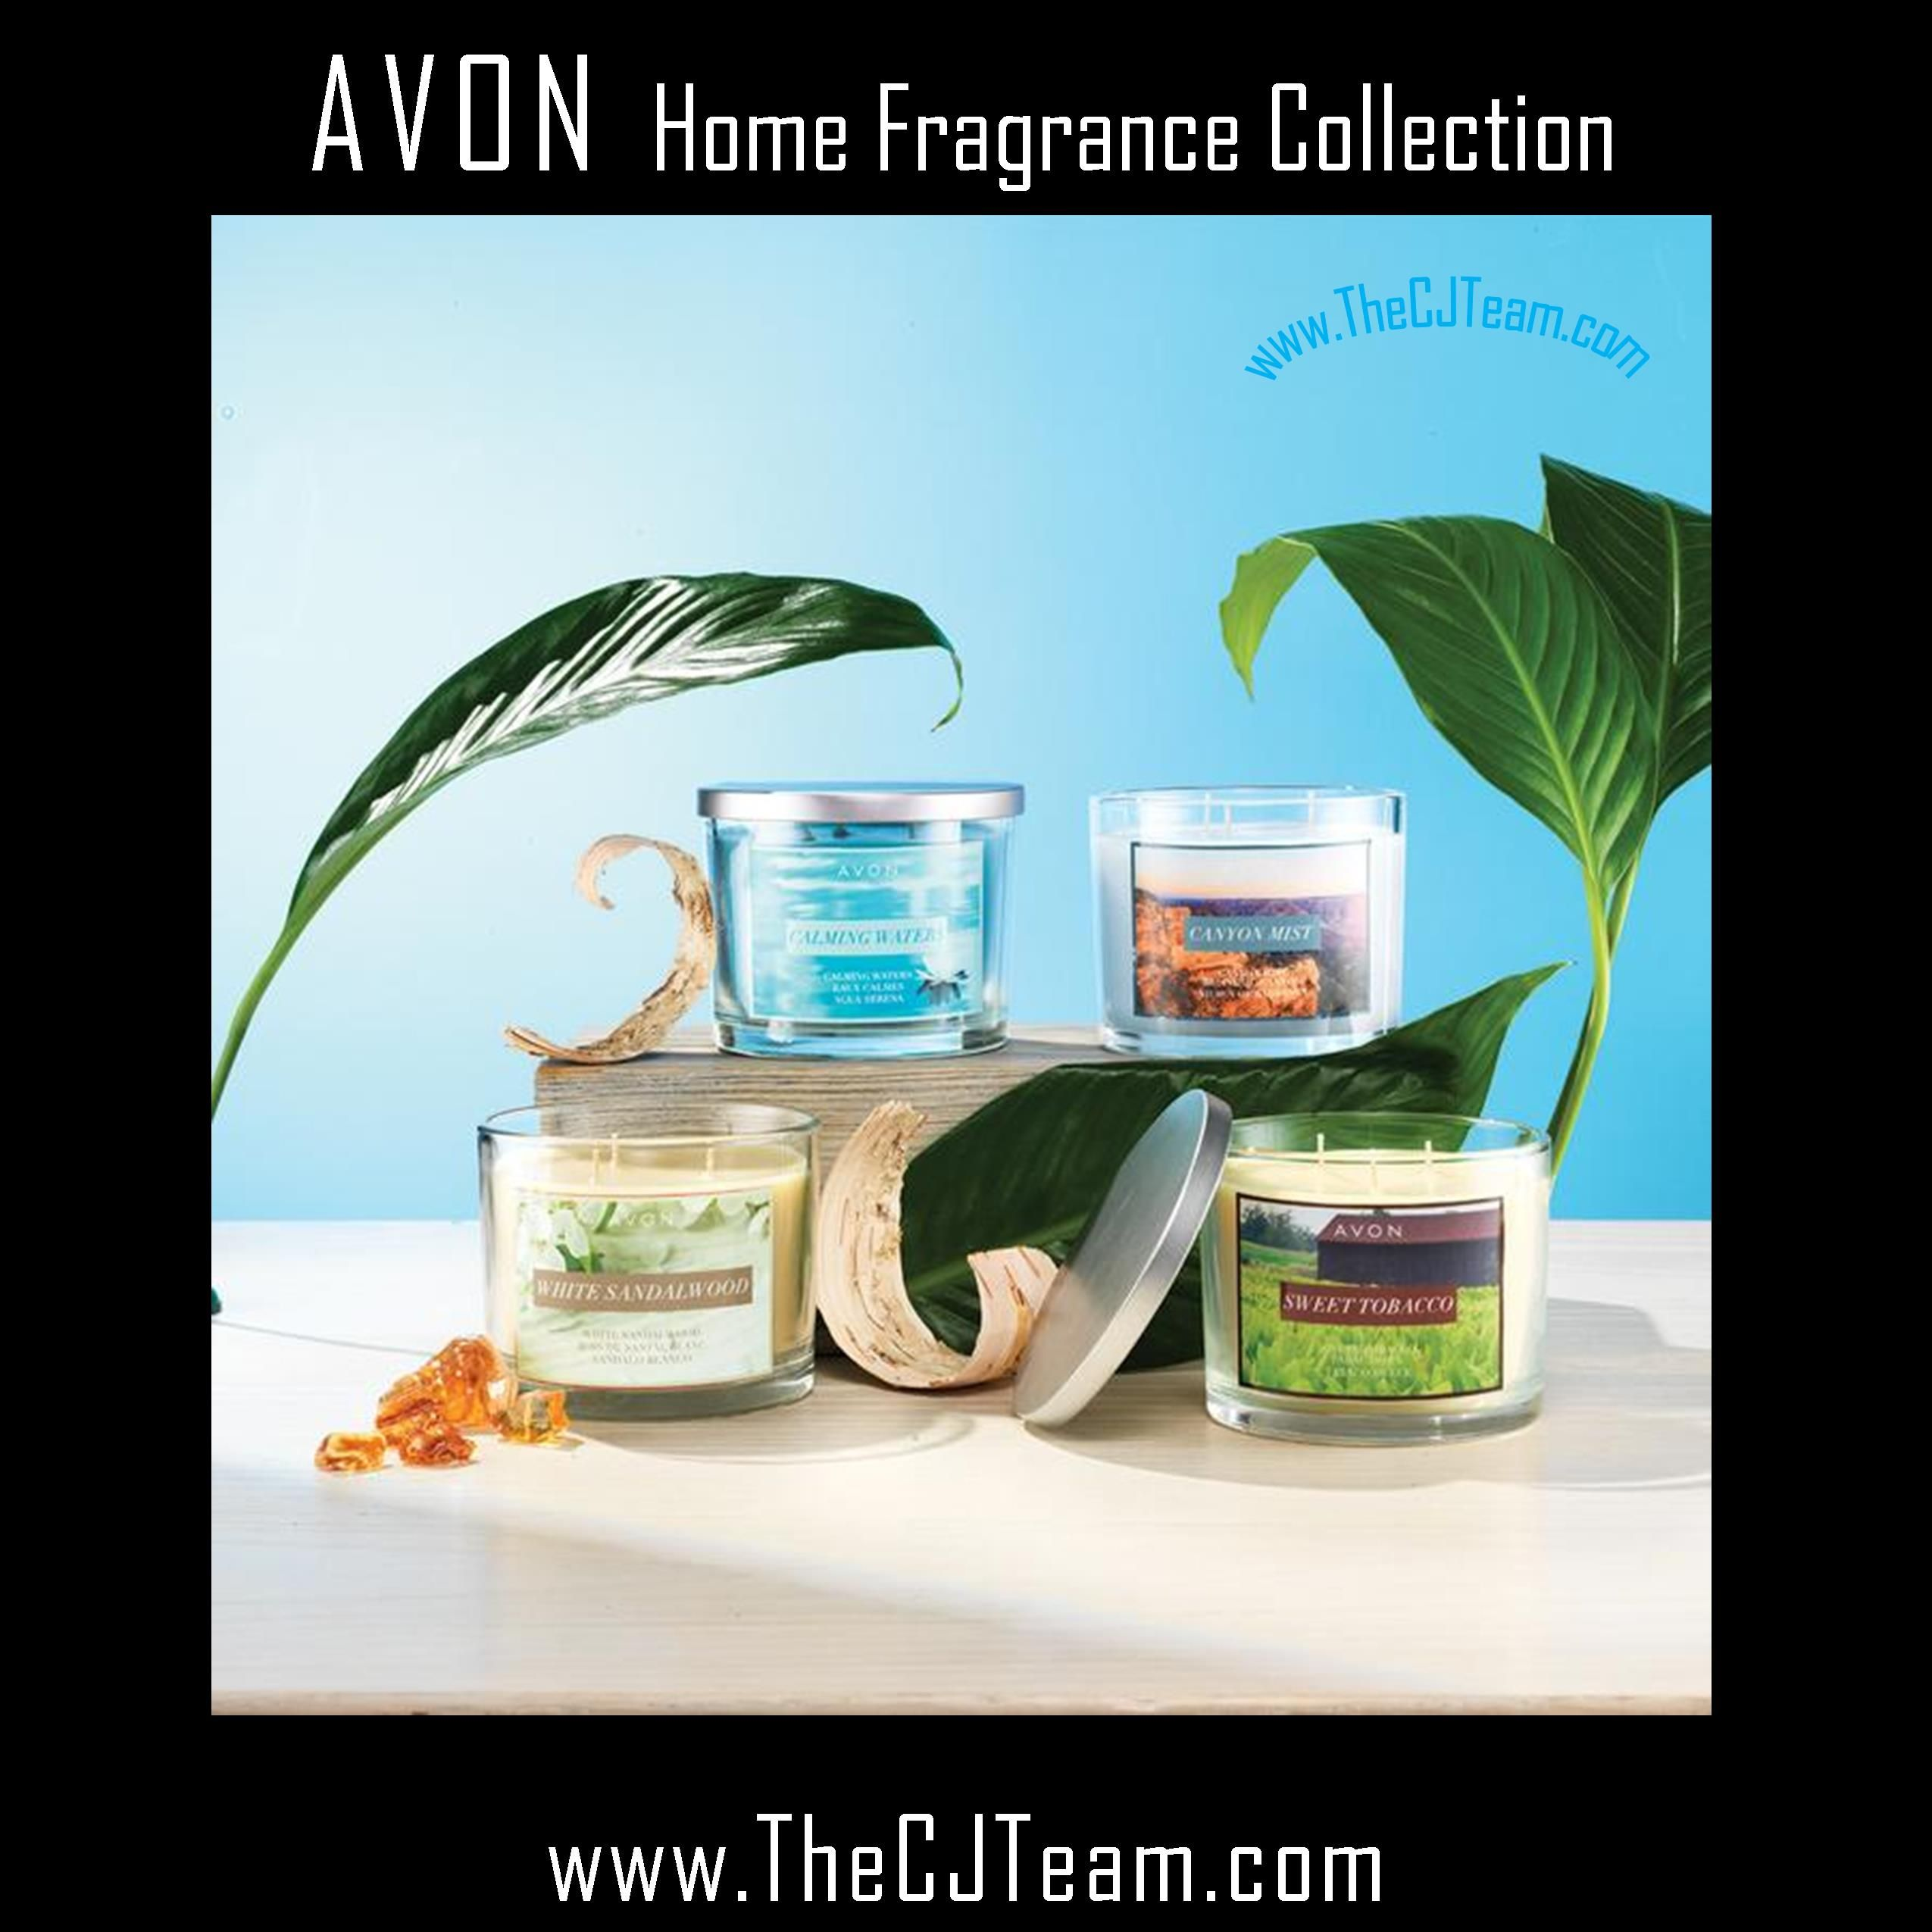 🌺Brighten your home with crisp, clean scents with Avon 3-wick candles. Available in a variety of yummy flavors. #C5